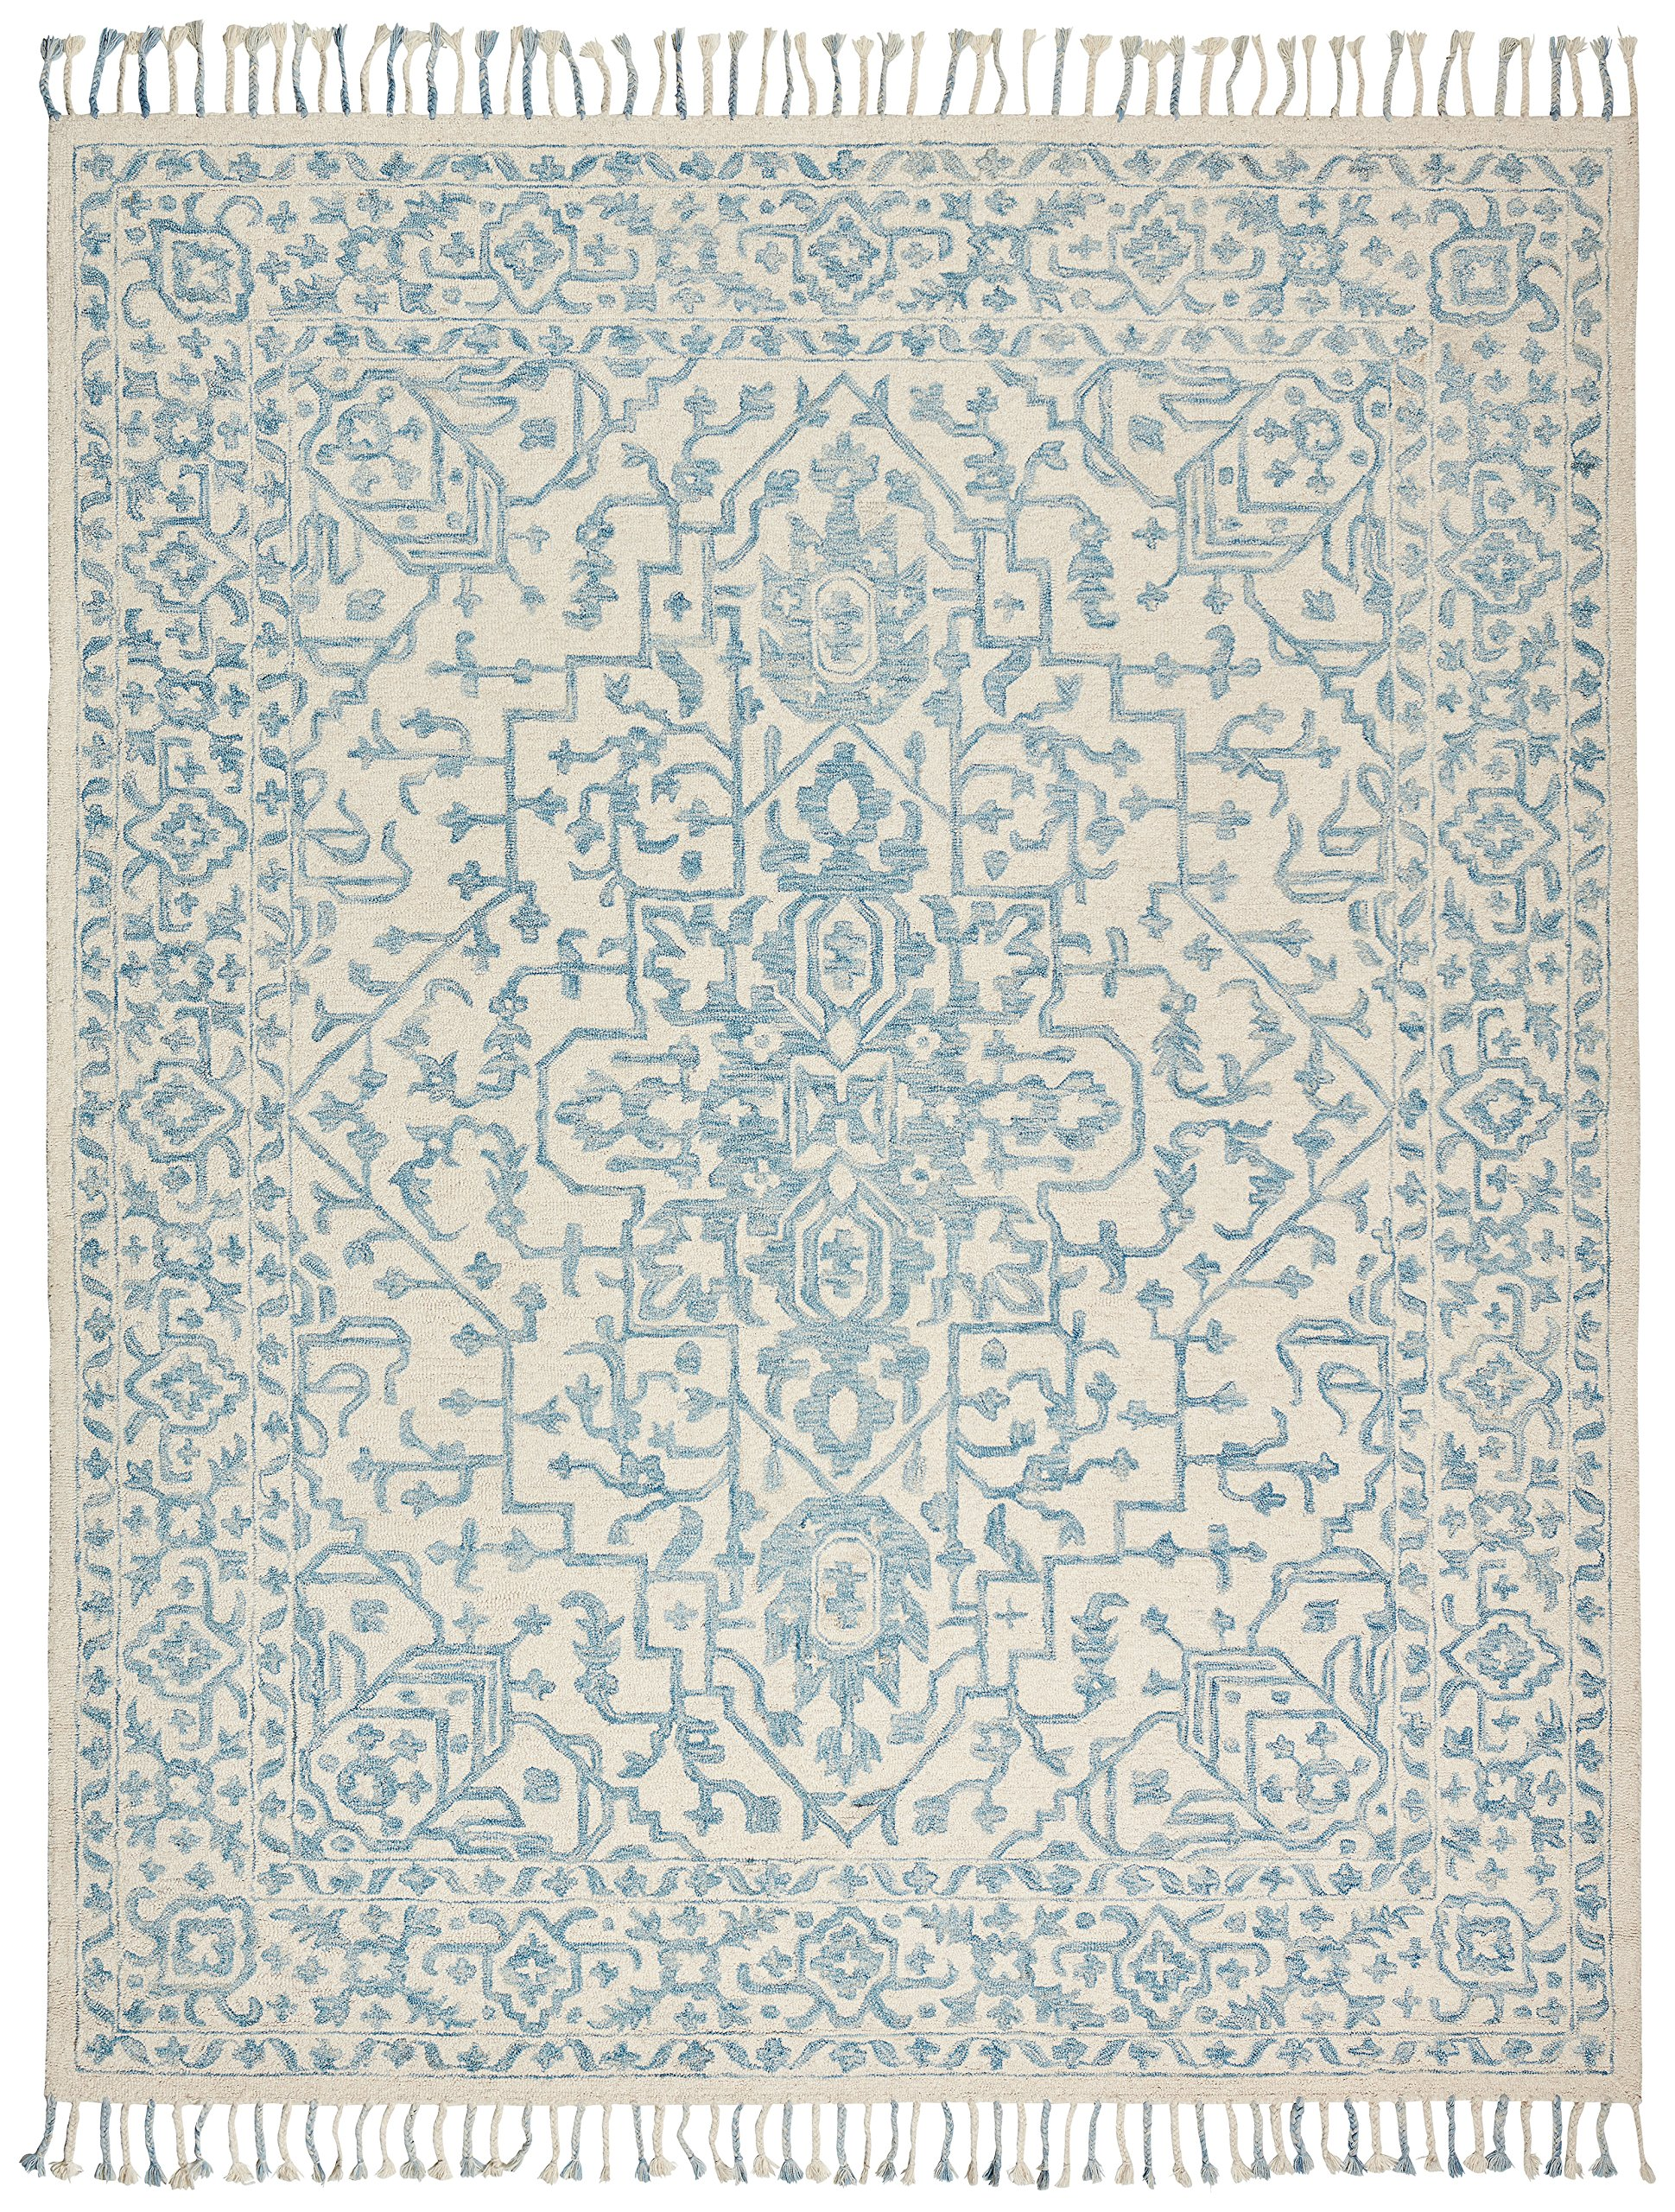 Stone & Beam New England Transitional Wool Area Rug, 8'x10', Blue and Cream